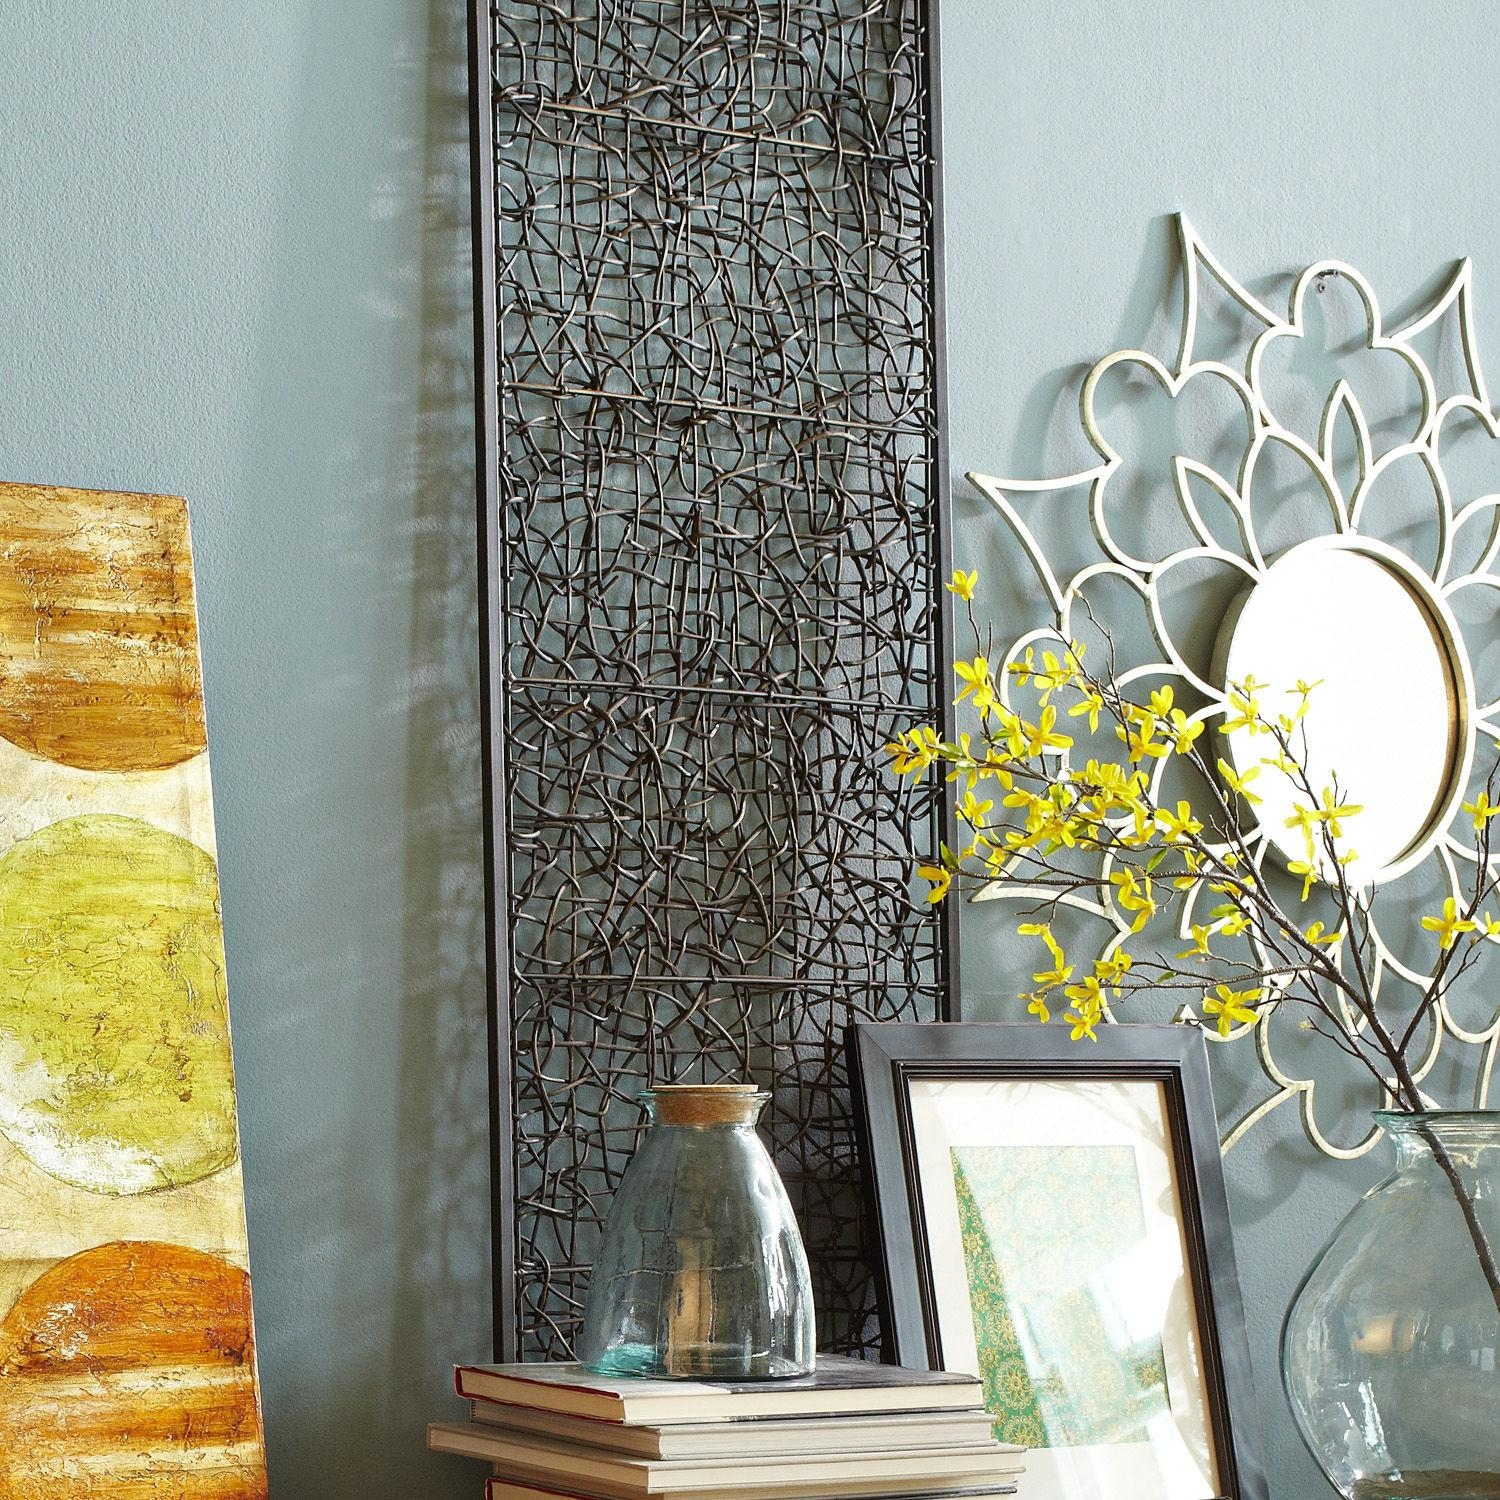 Wall Decor: Wicker Wall Decor Images. Trendy Wall (View 4 of 20)